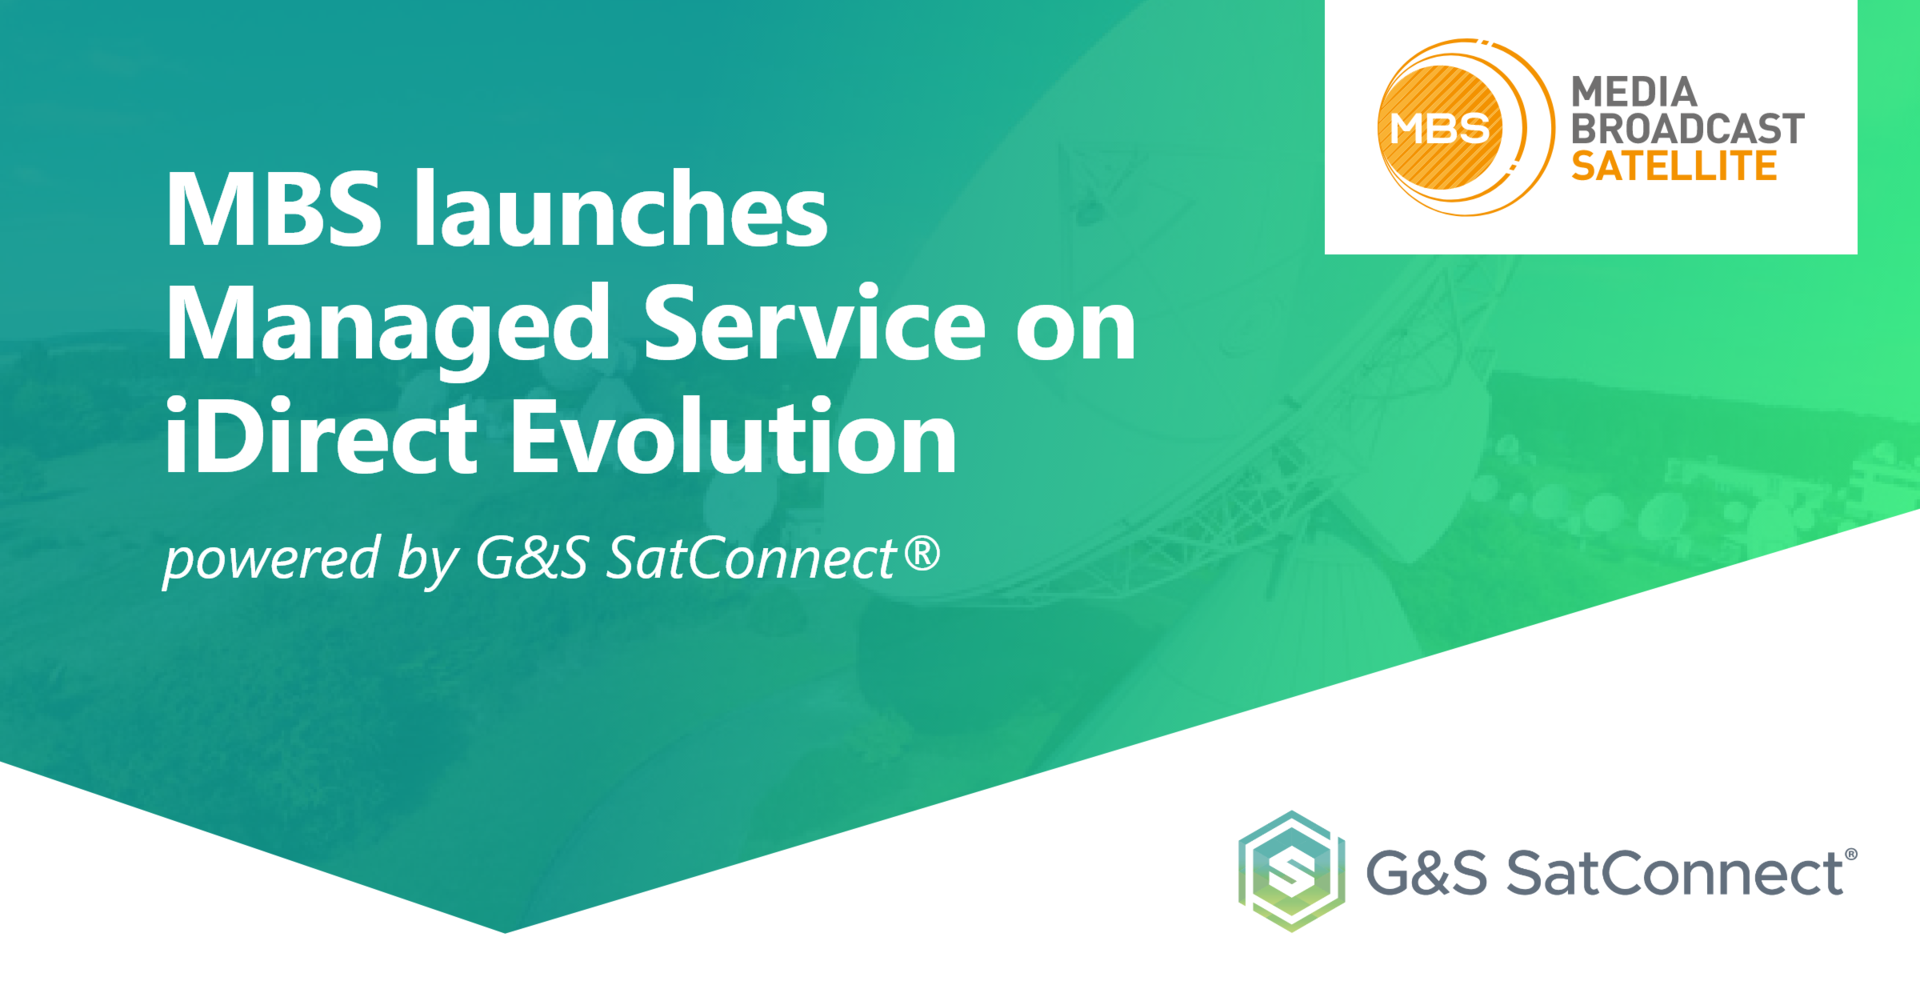 "G&S SatCom at LinkedIn about ""Media Broadcast Satellite launches Managed Services on evolution - powered by G&S SatConnect"""